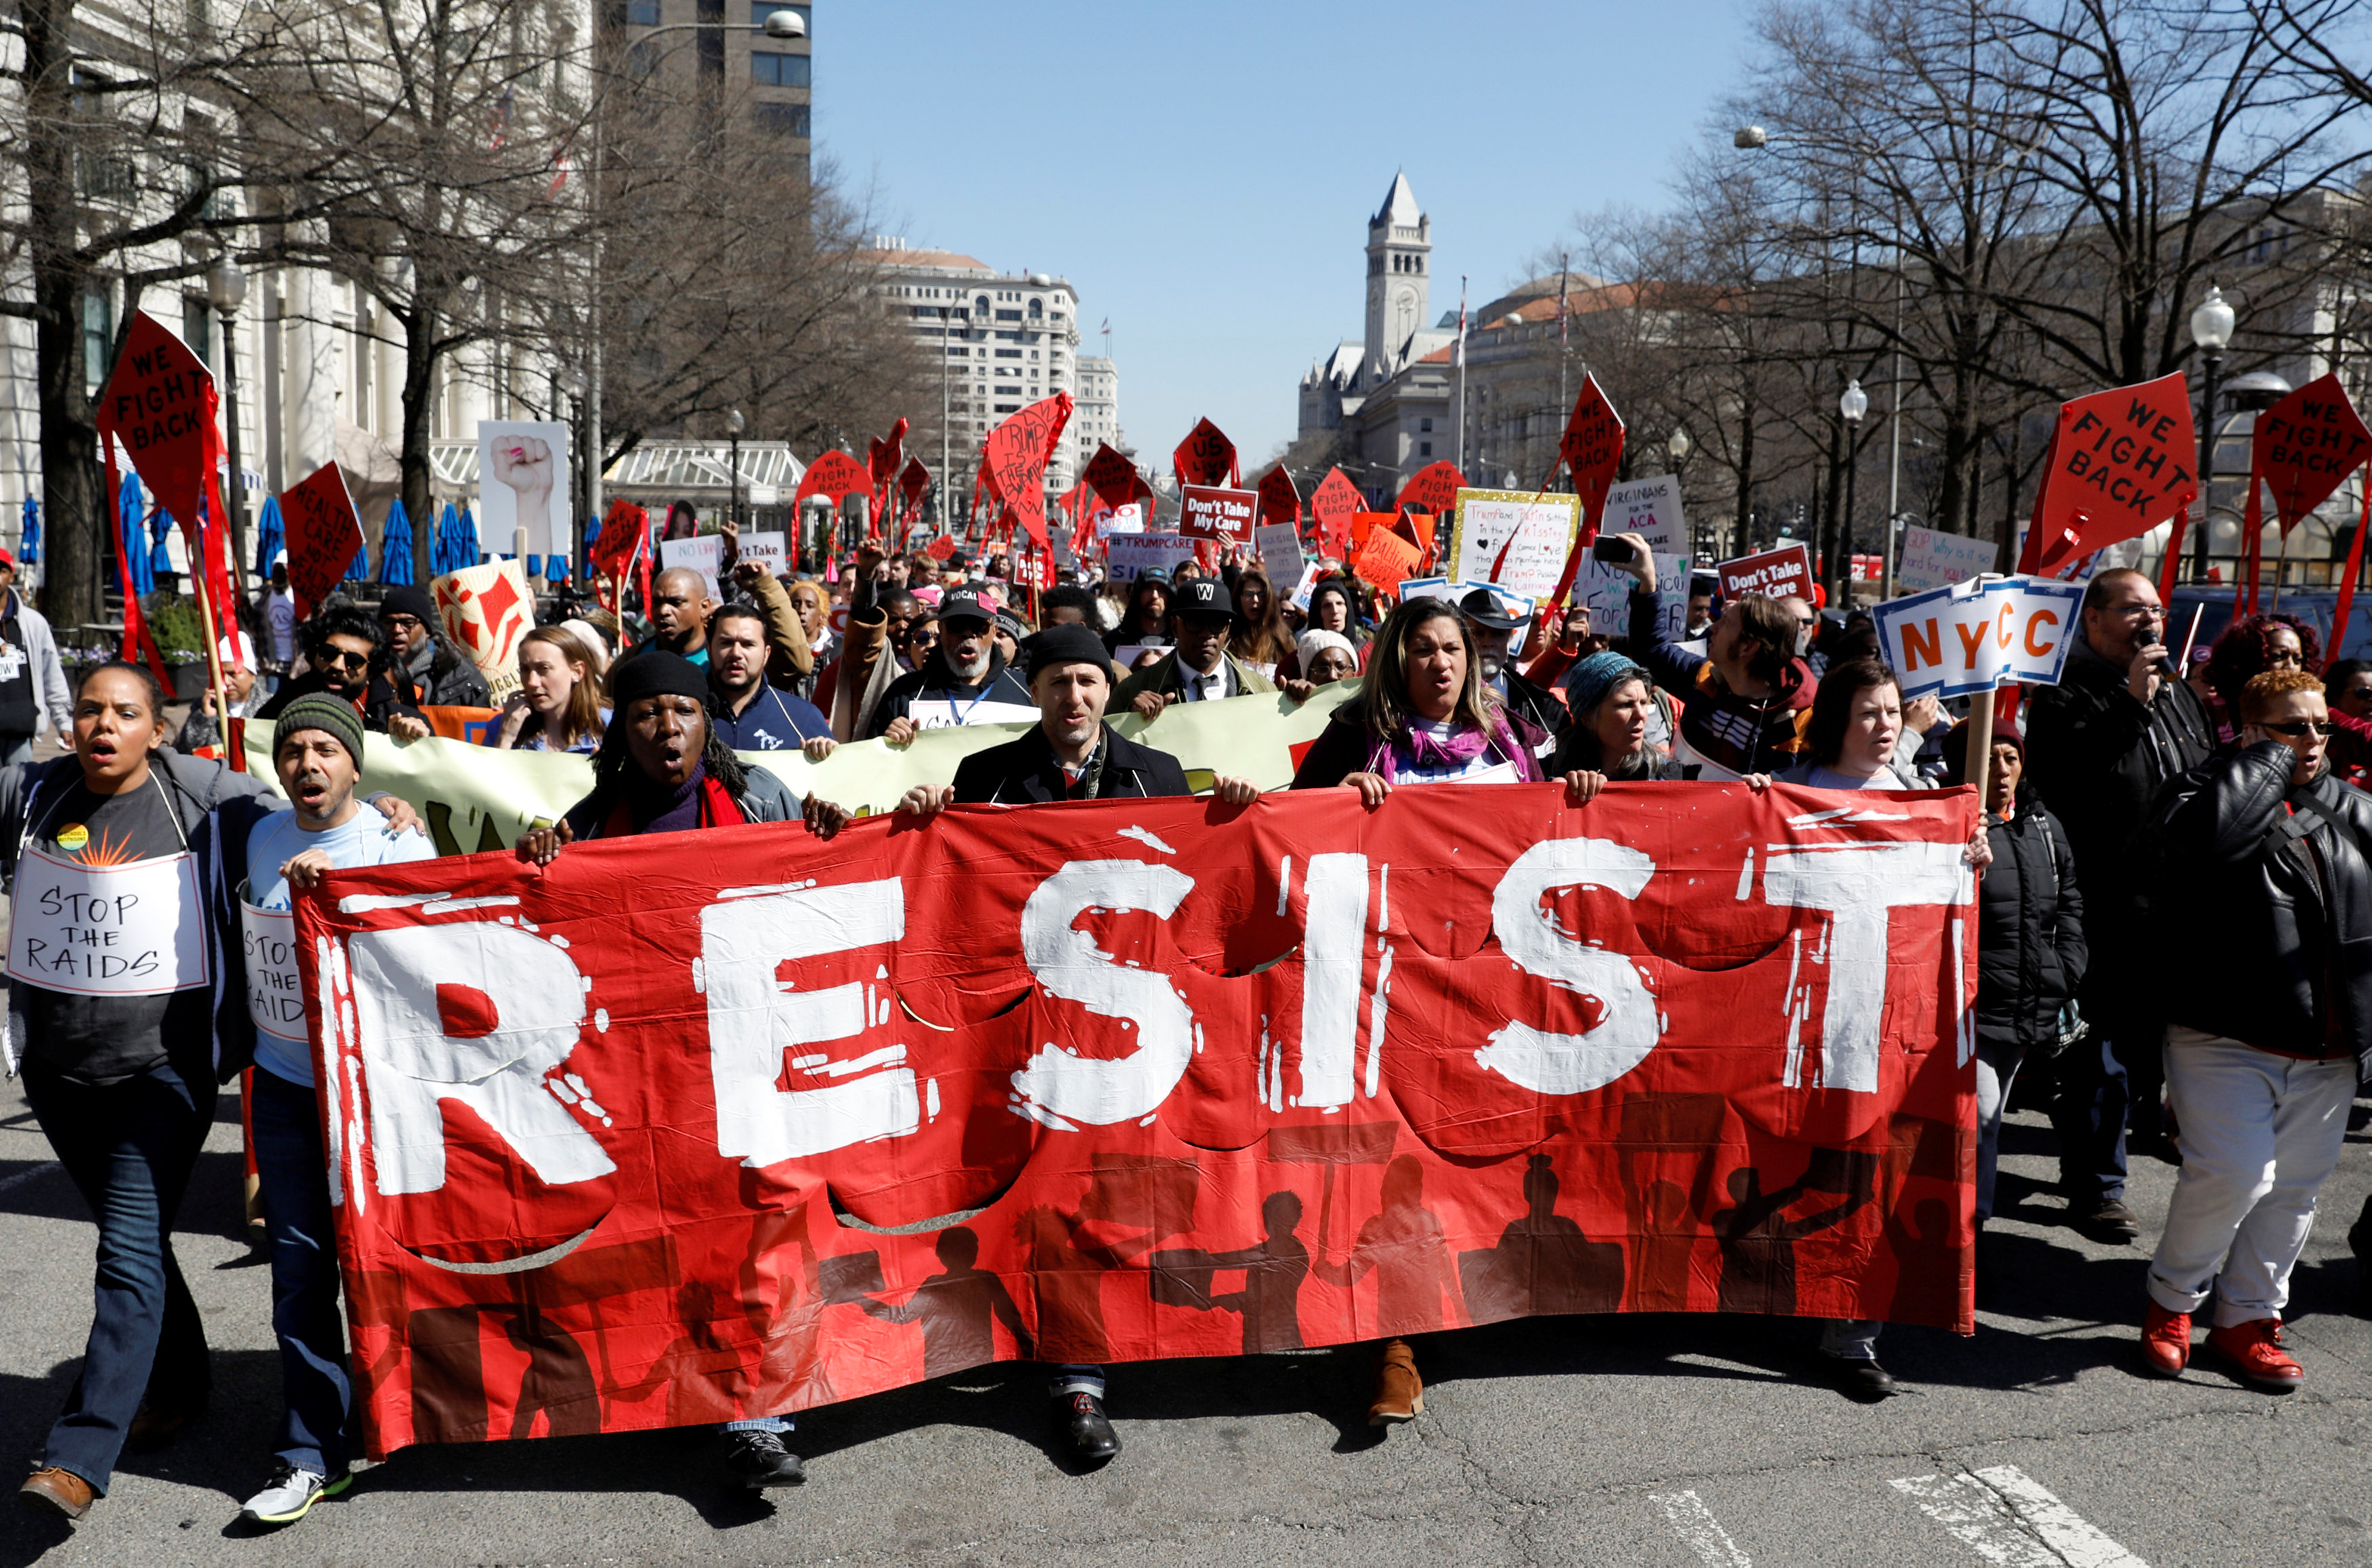 Protesters demonstrate against U.S. President Donald Trump and his plans to end Obamacare as they march to the White House in Washington, U.S., March 23, 2017. REUTERS/Kevin Lamarque